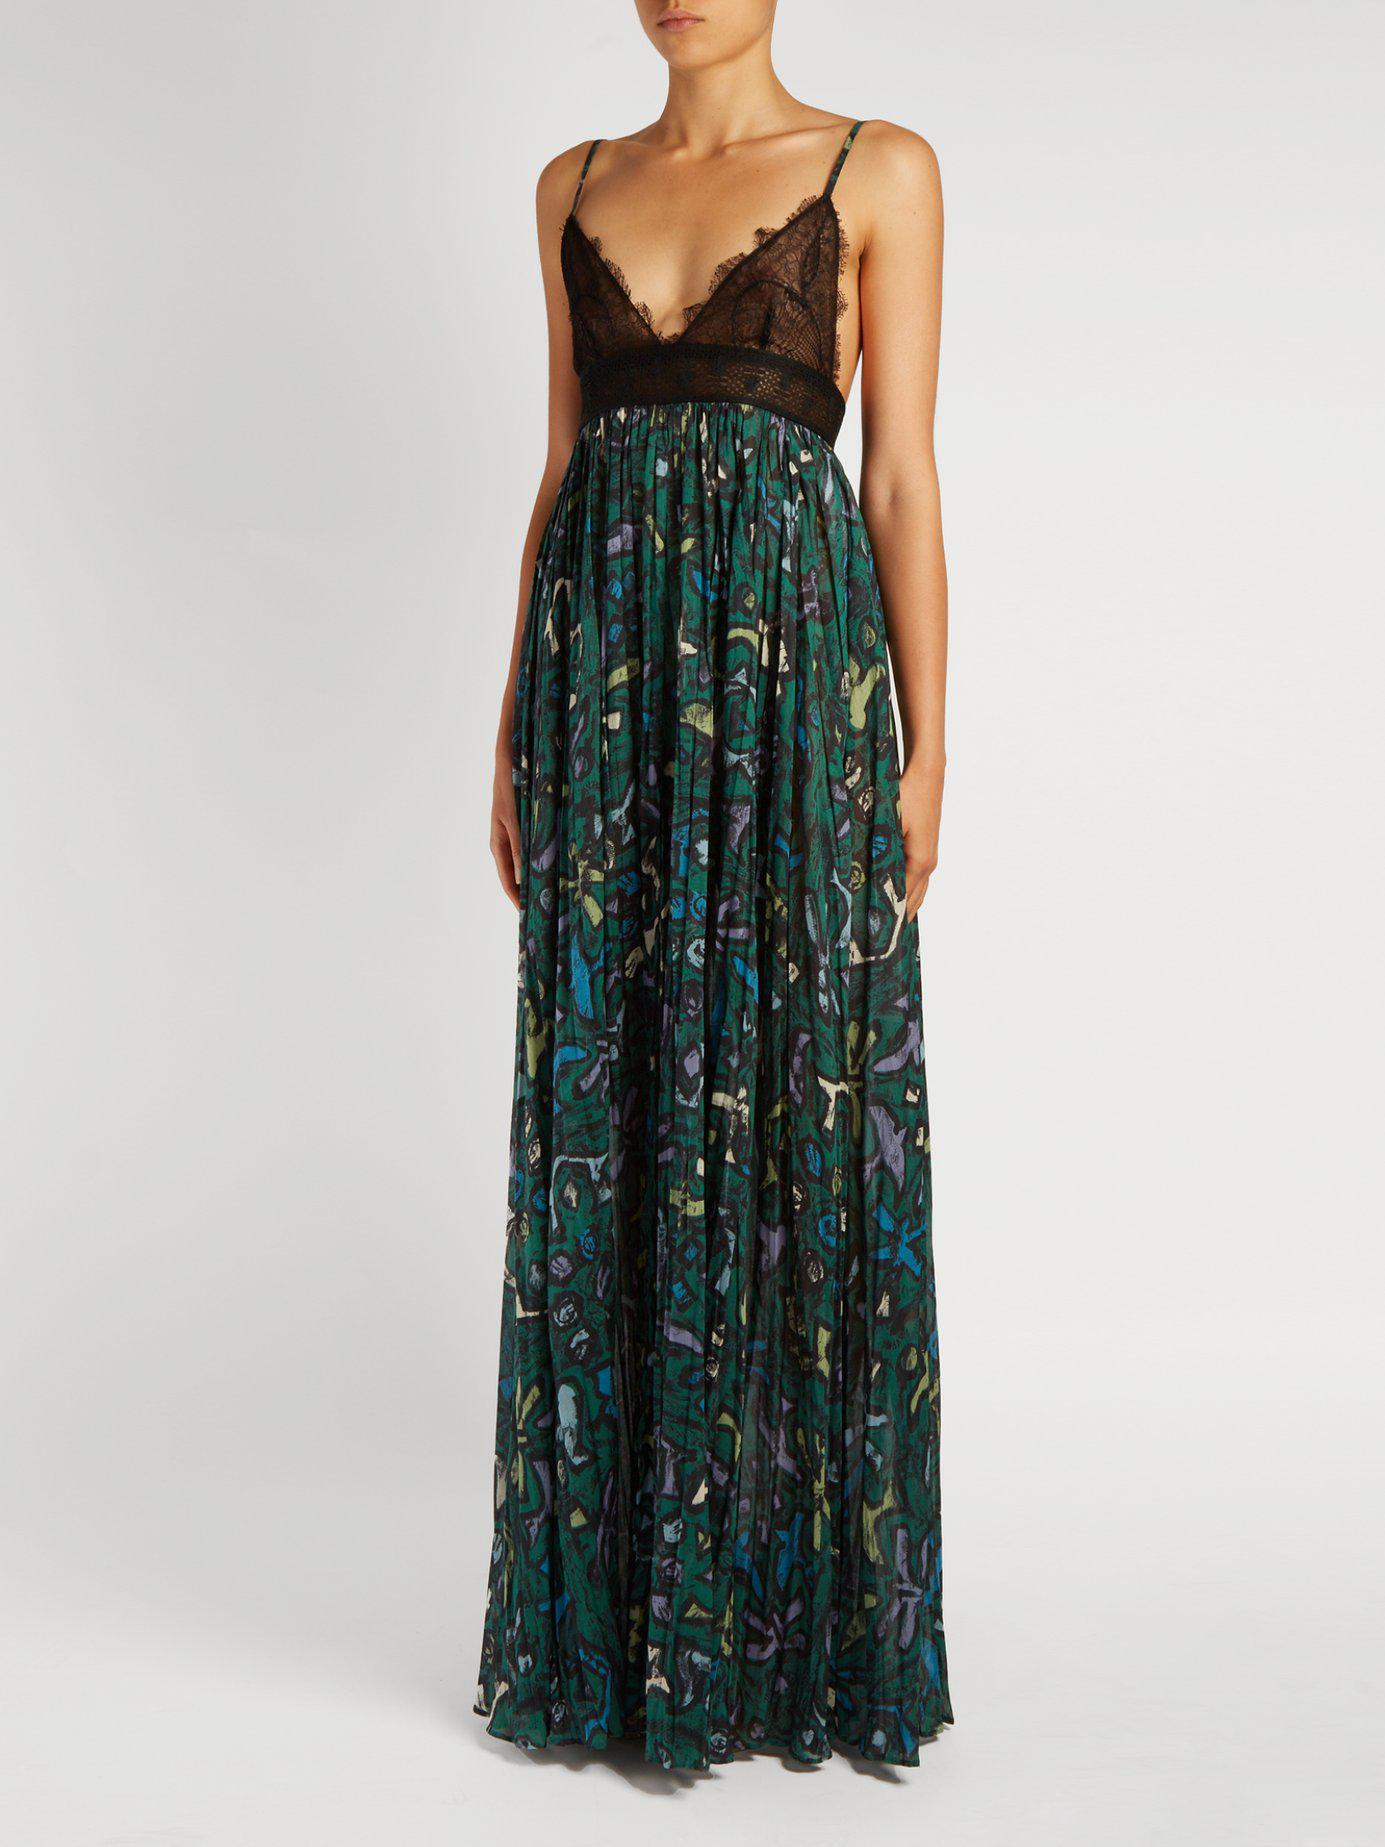 Valentino Panama Print Cotton And Lace Gown Lyst